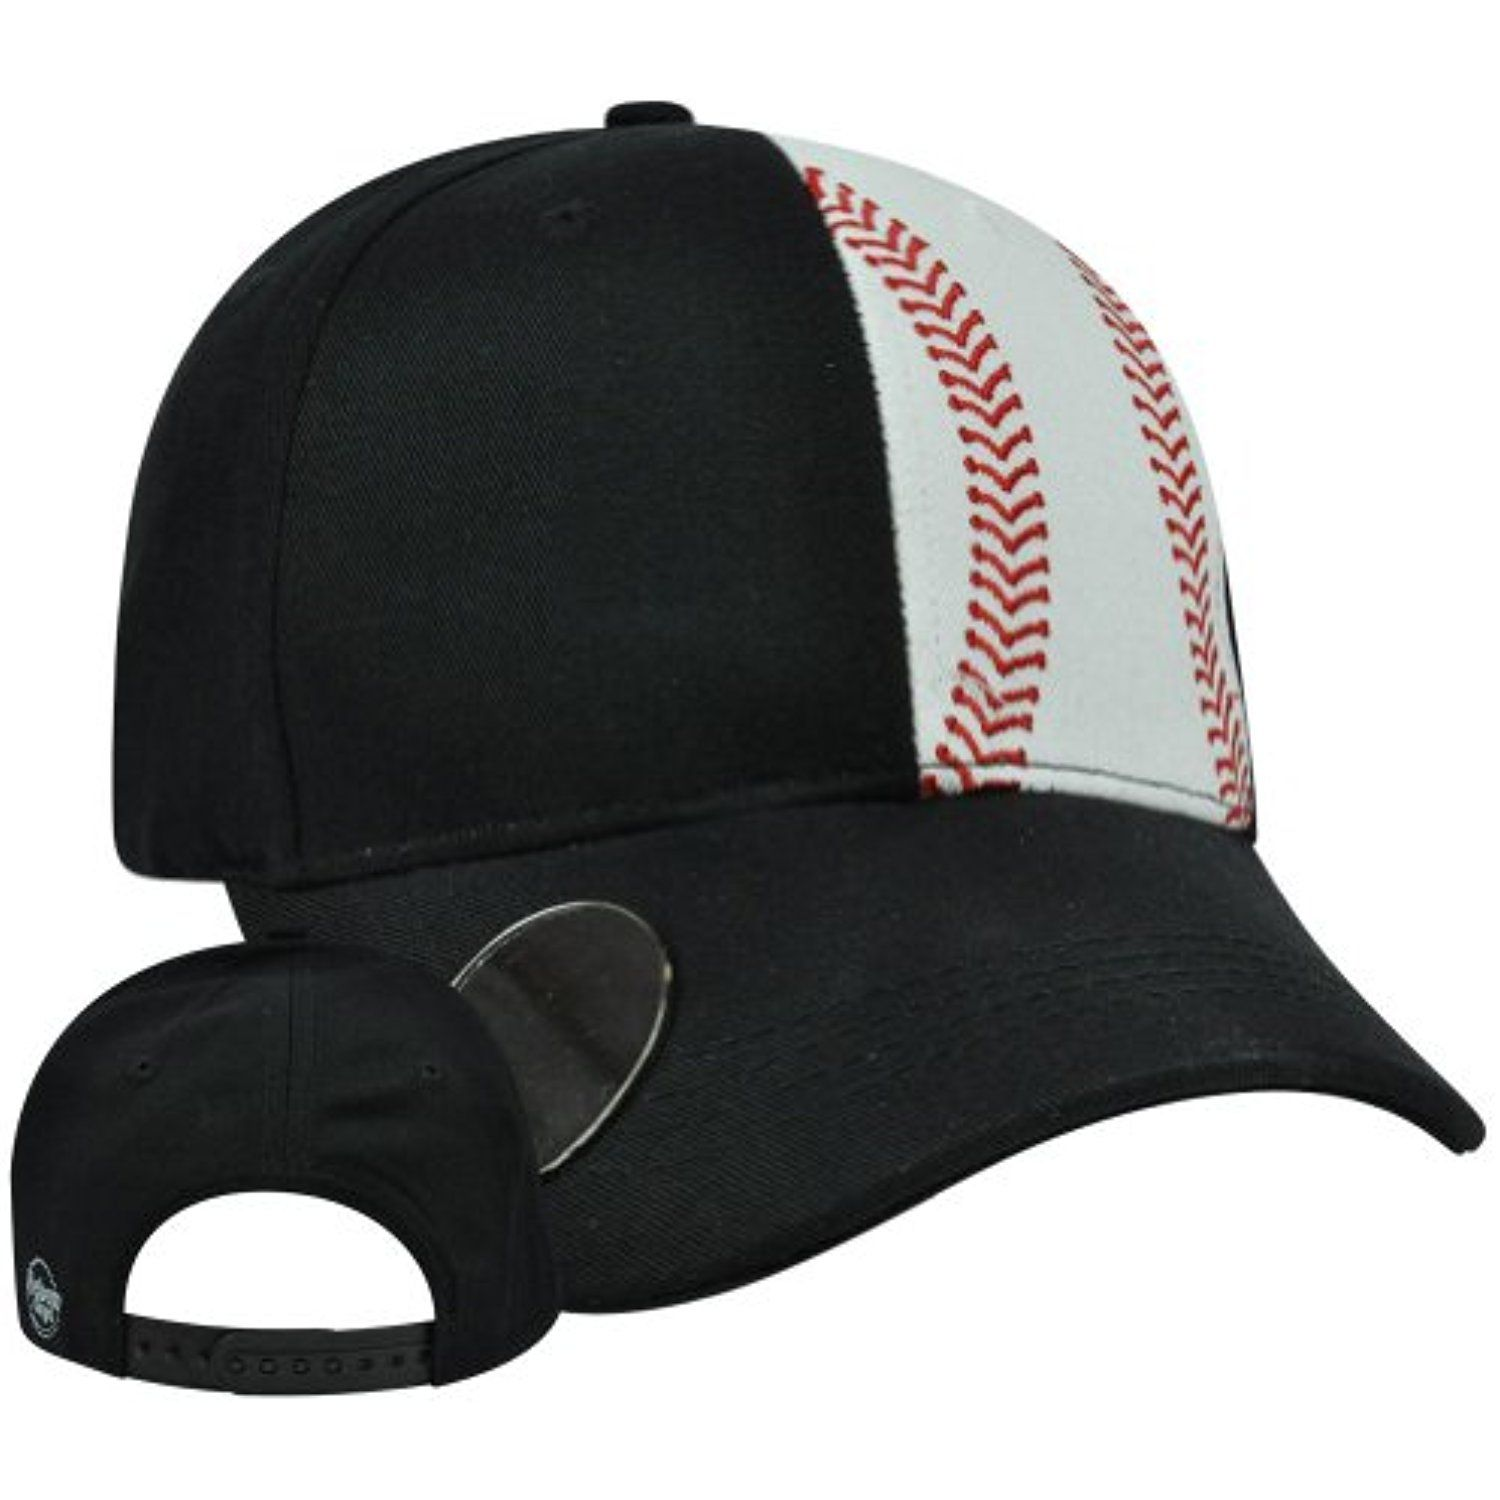 99bf76d5428 Baseball Plain Blank Beer Game Built In Bottle Drink Opener Snapback Hat Cap     Check out this great product. Find ...